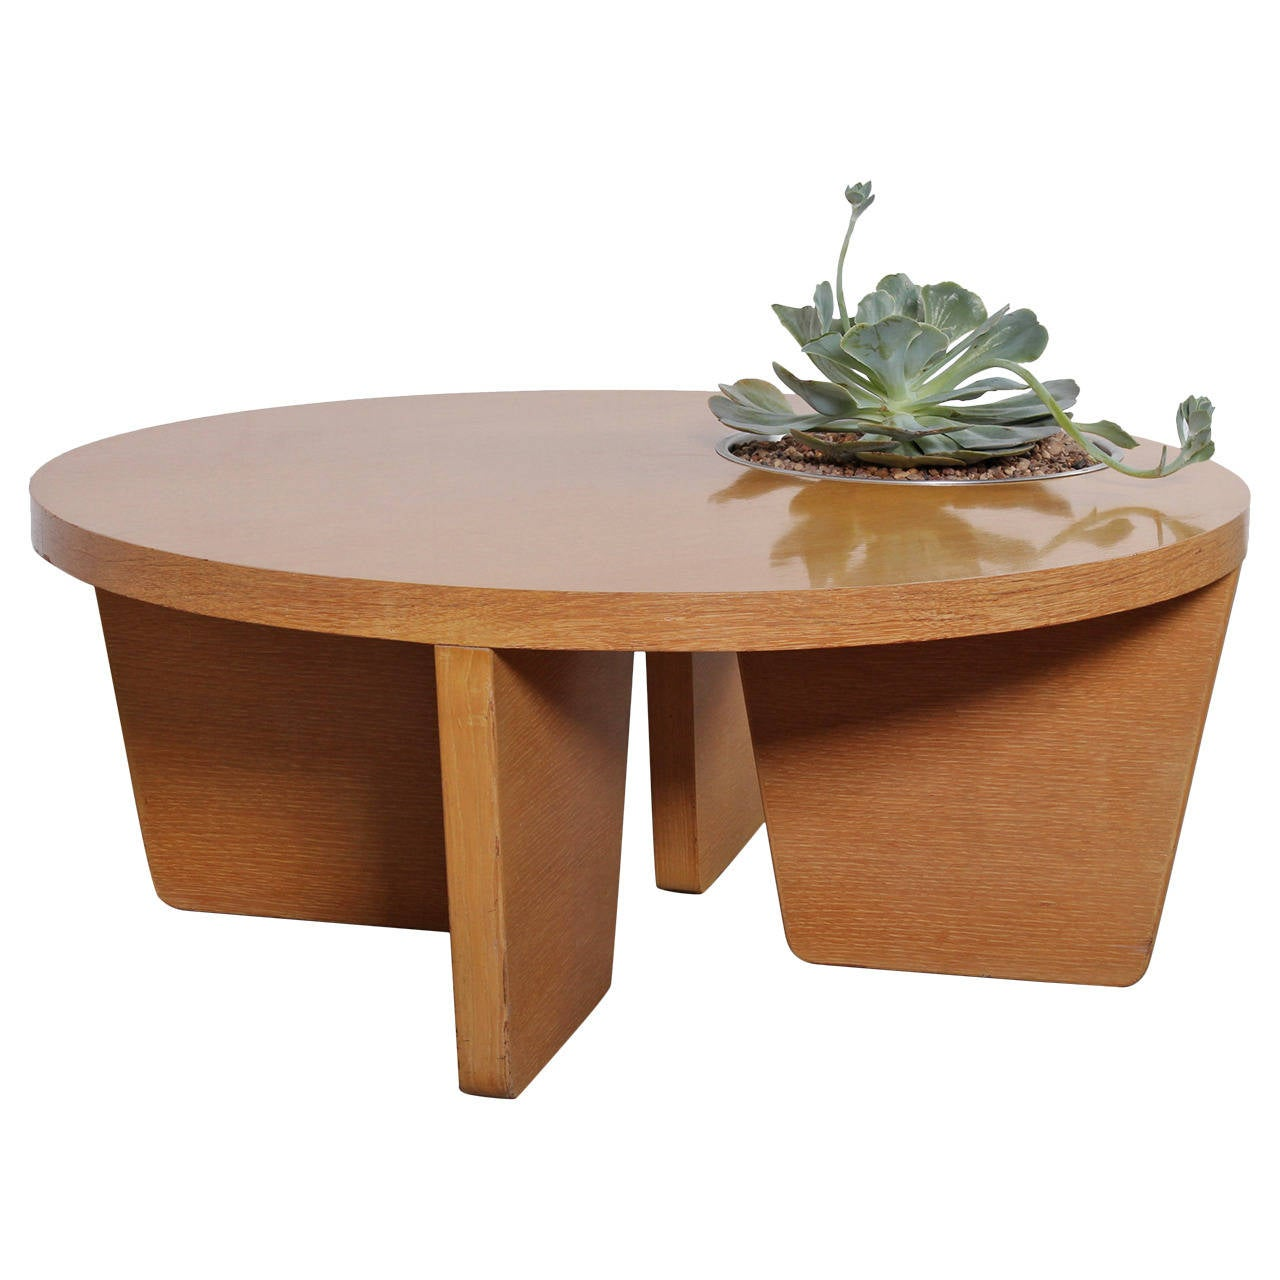 Coffee Table With Planter Attributed To Harvey Probber For